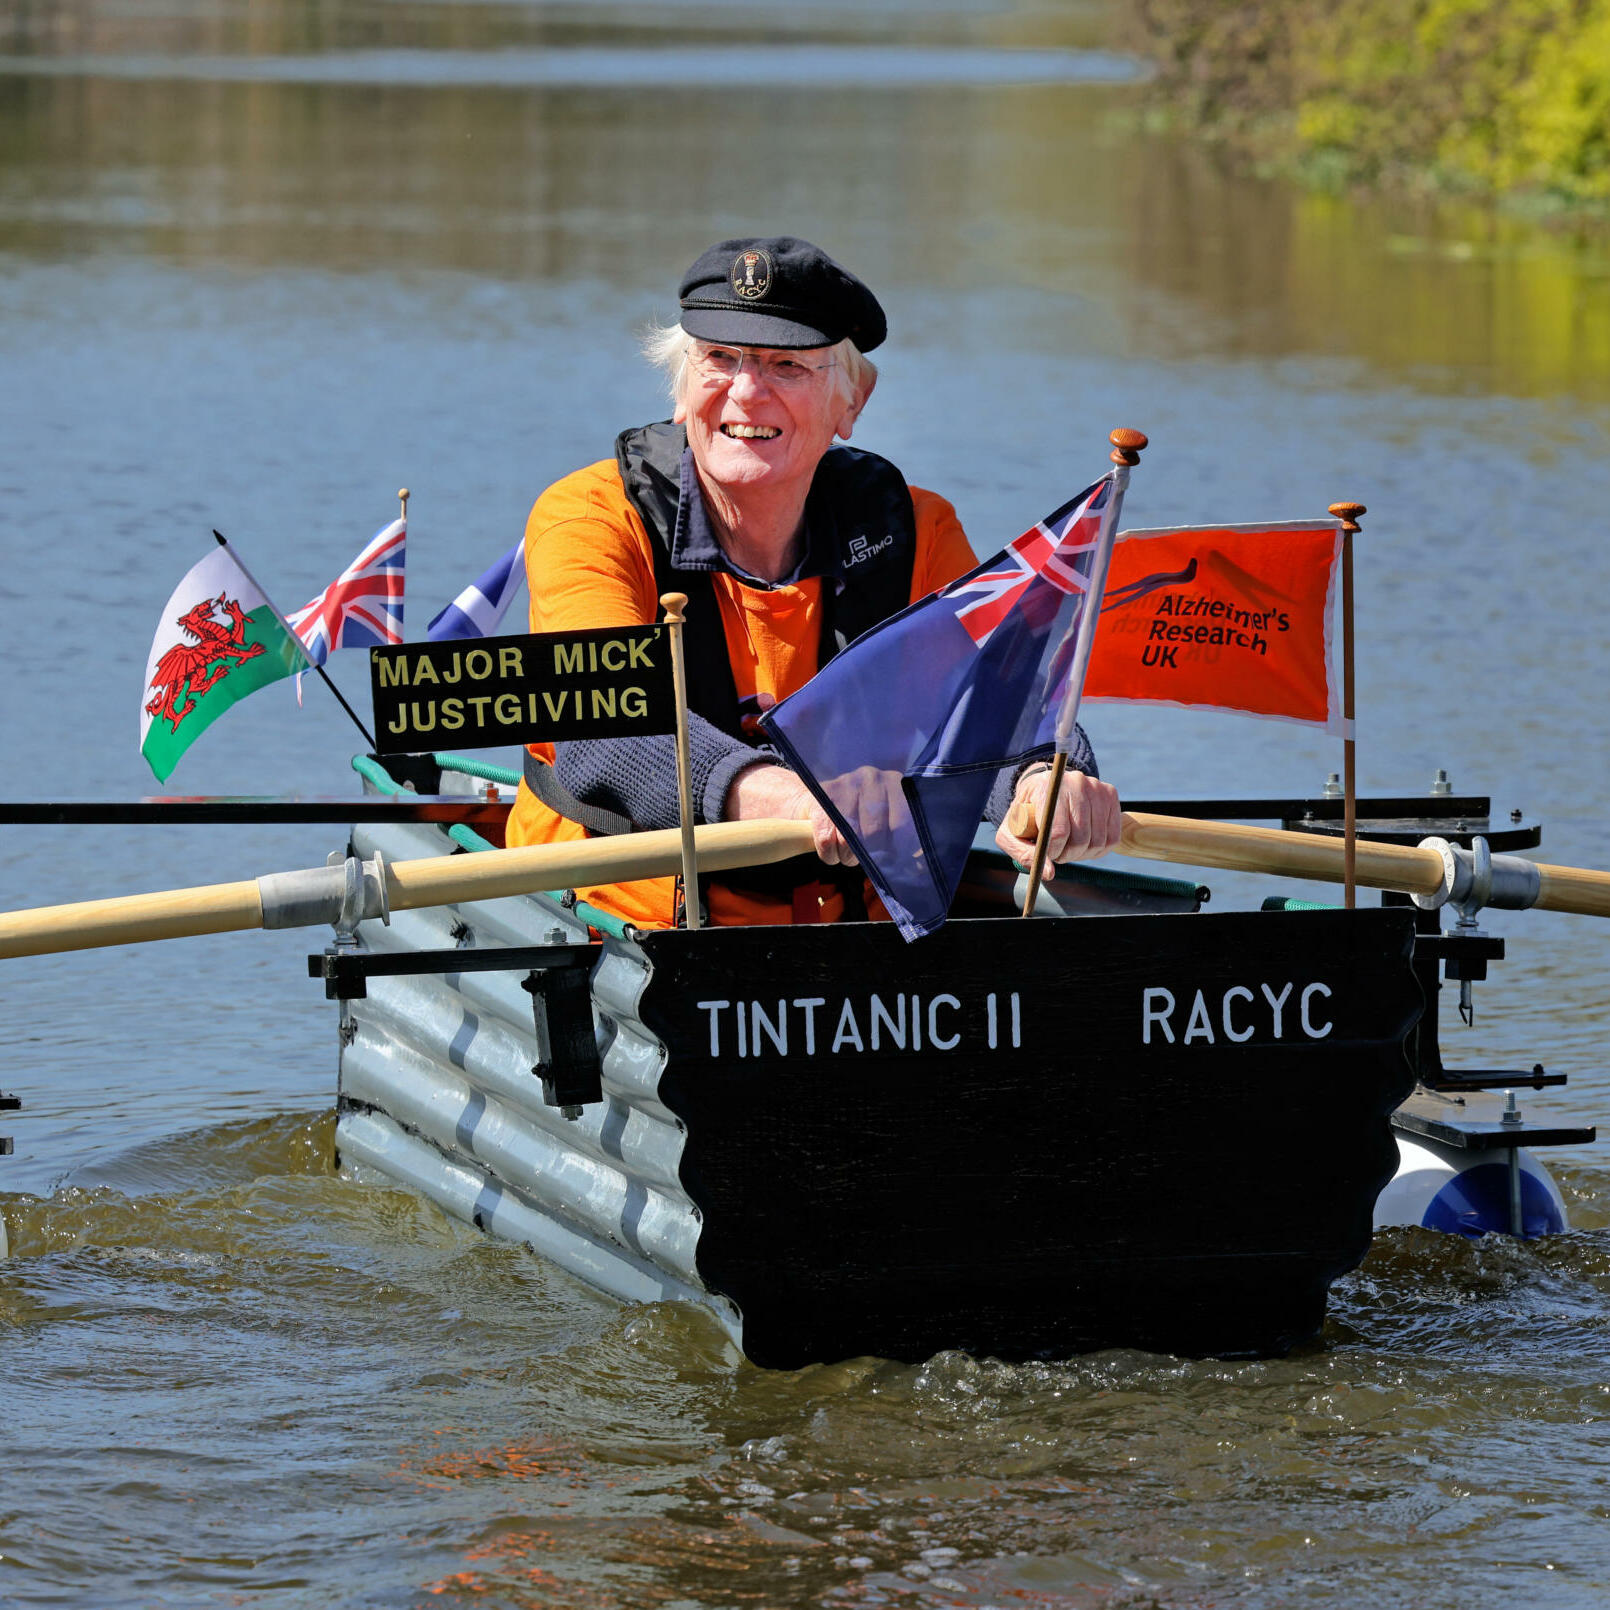 TINTANIC 2 SETS SAIL - SEE JAMES MURRAY FEATURE.  MAJOR ÔMADÕ MICK STANLEY ABOARD HIS NEW ÔTINTANIC 2Õ, TAKING HER OUT FOR TRIALS ALONG THE CHICHETSRE CANAL FOR THE DAILY EXPRESS TODAY